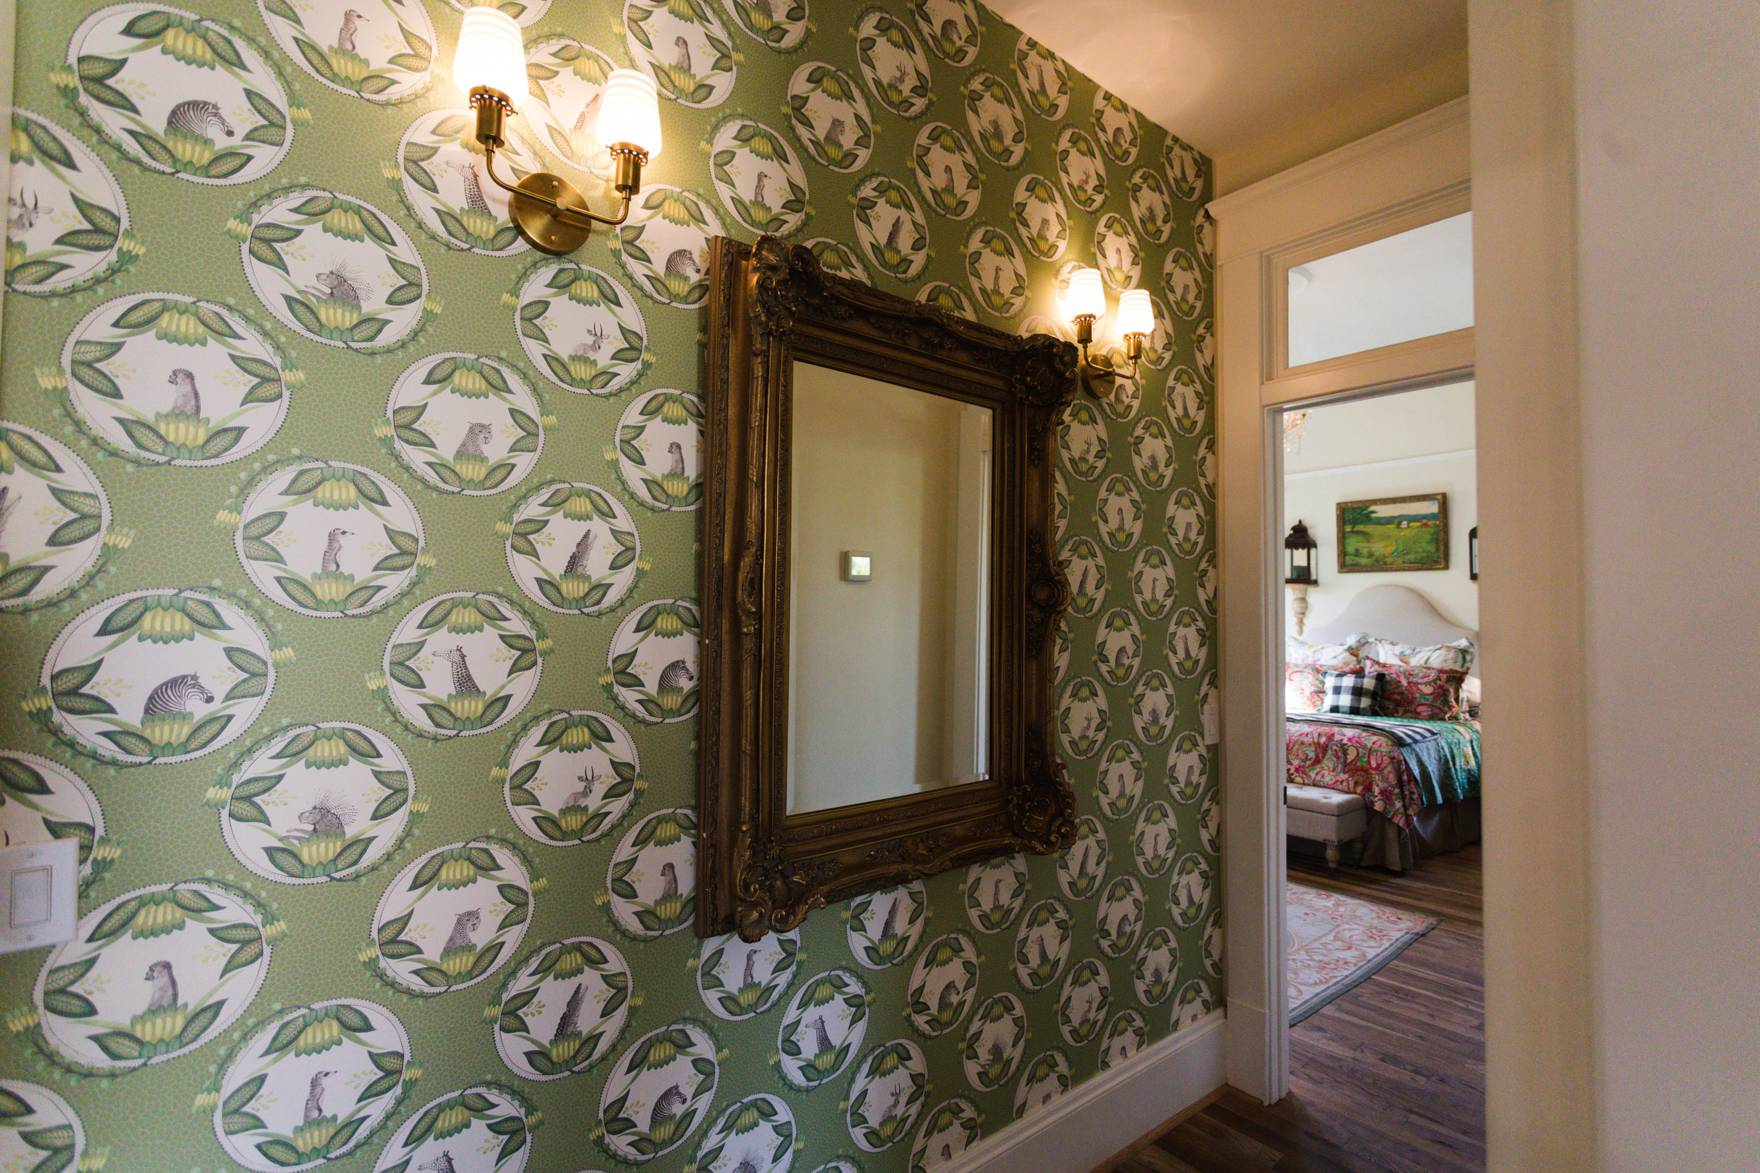 Home Tour of Boho Farm and Home in Downtown Phoenix - cottage brick style home from 1903 hallway wallpaper creature cameo wallpaper anthropologie